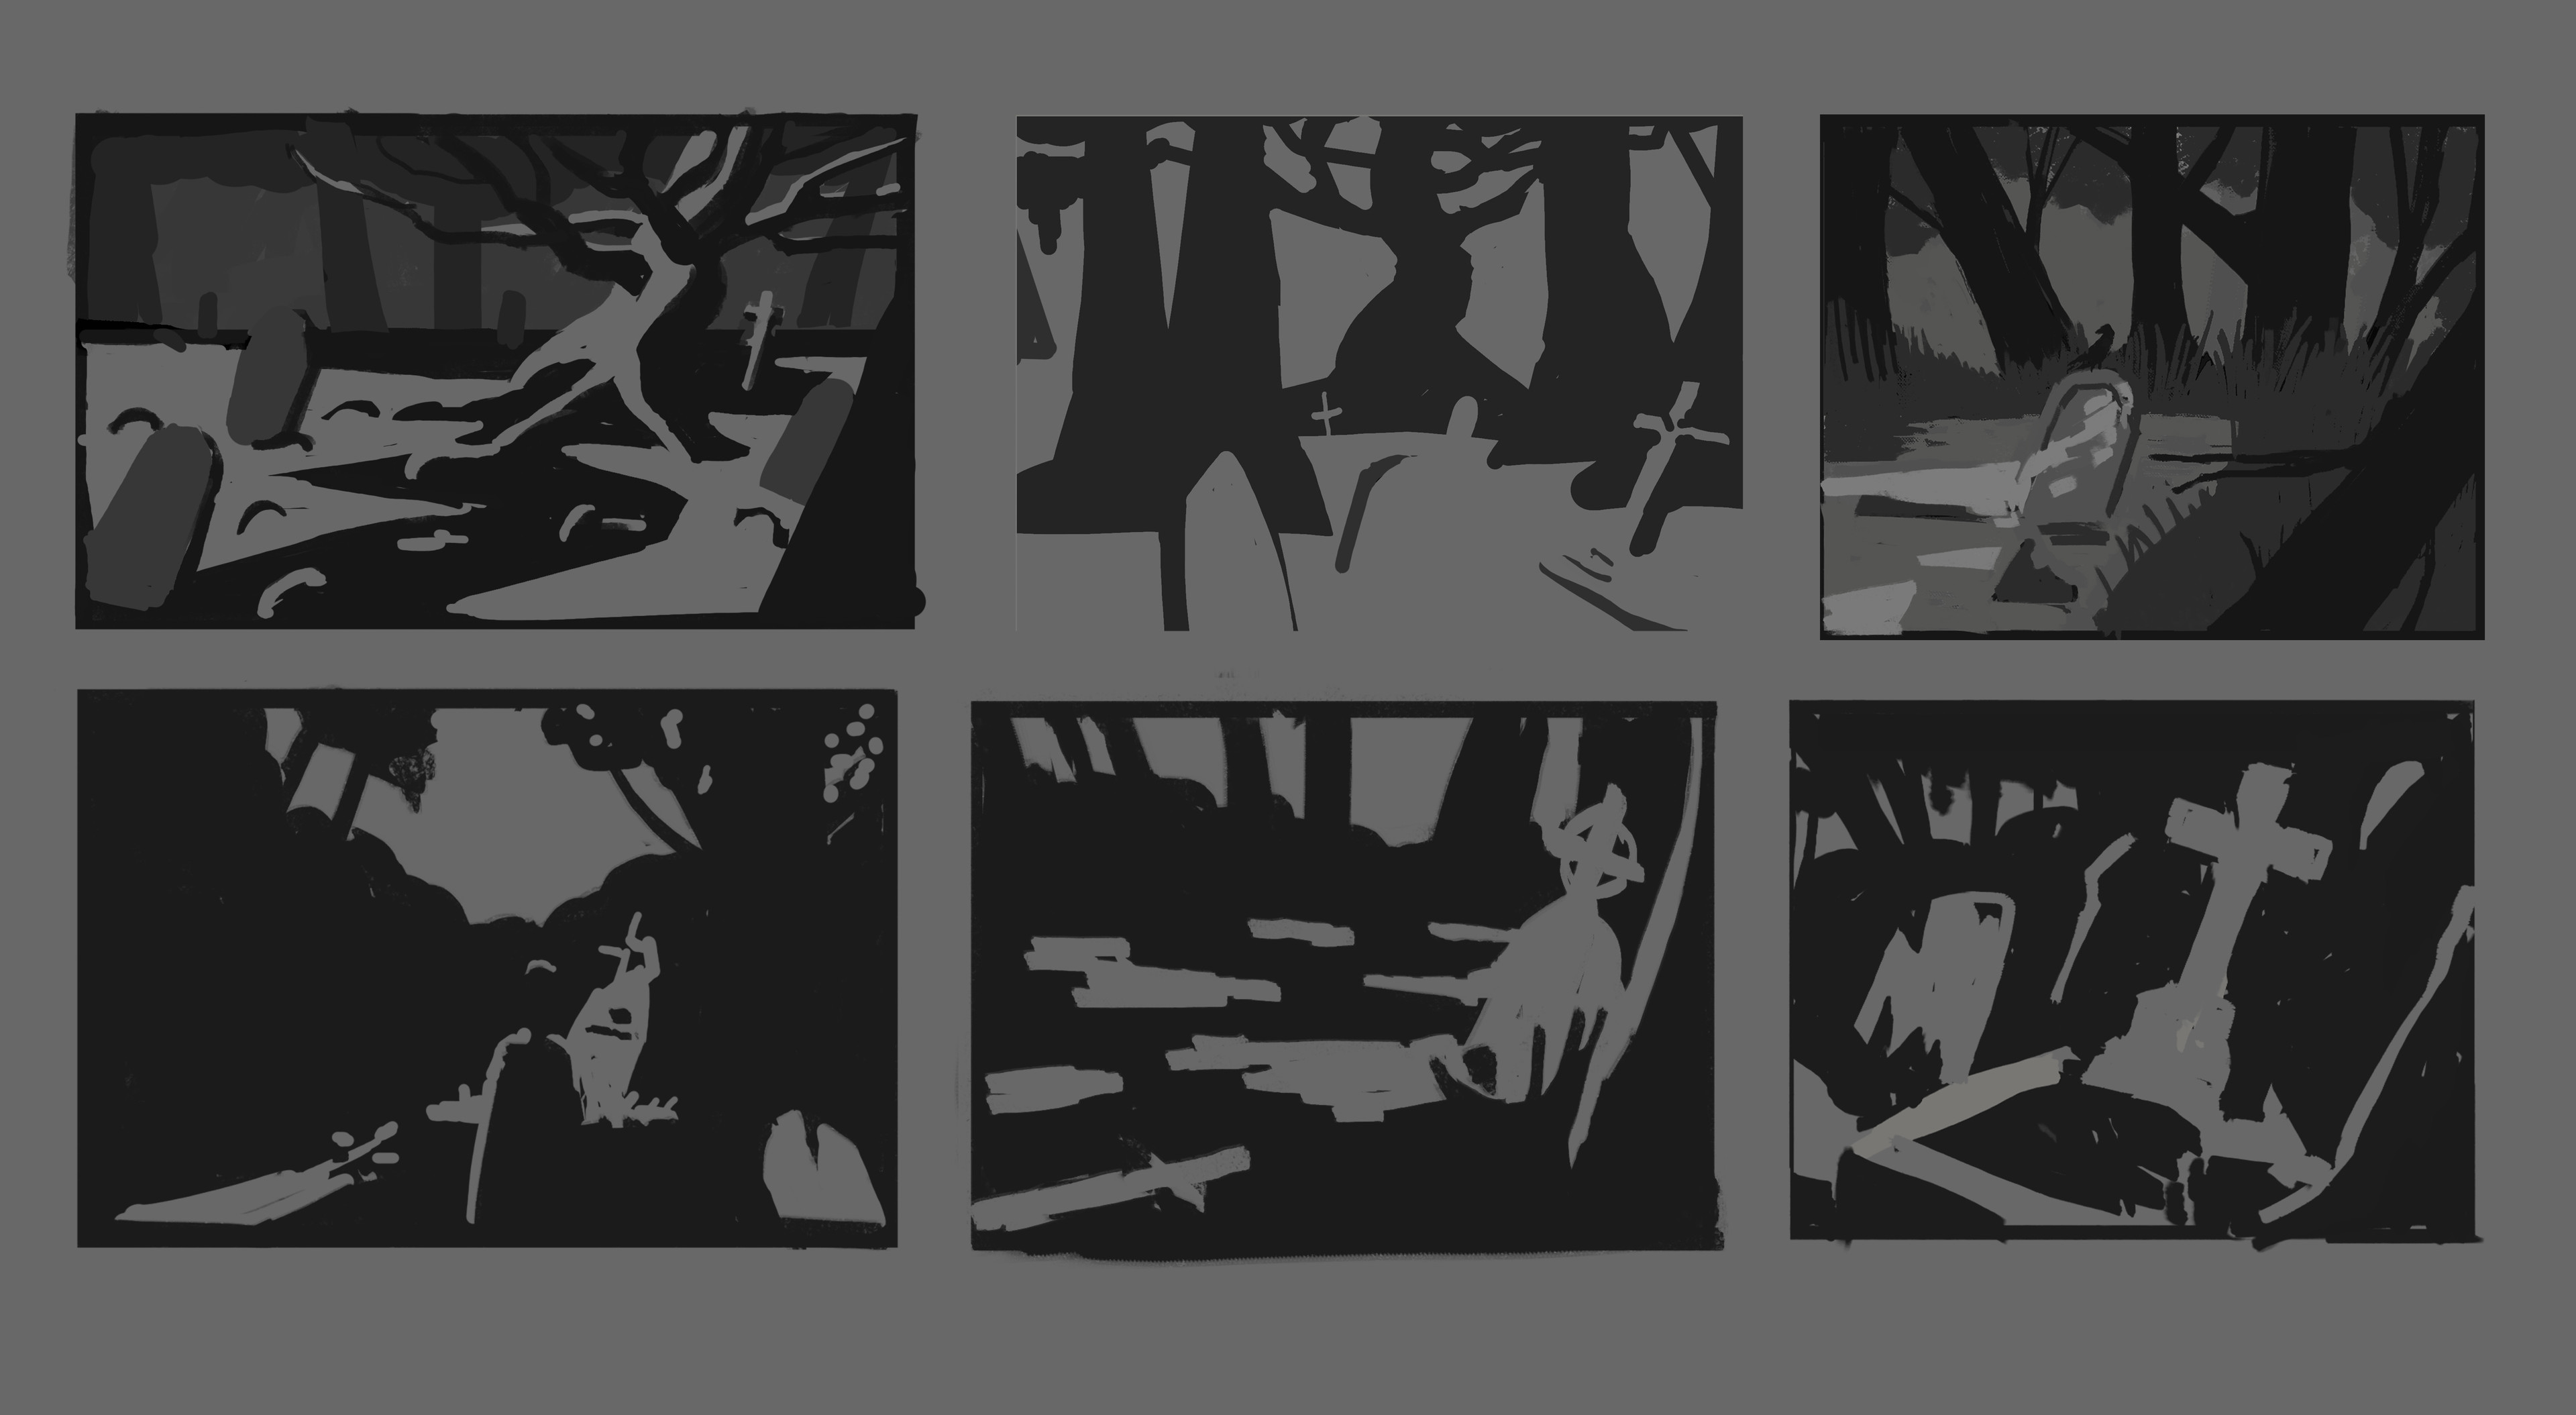 Thumbnail exploration